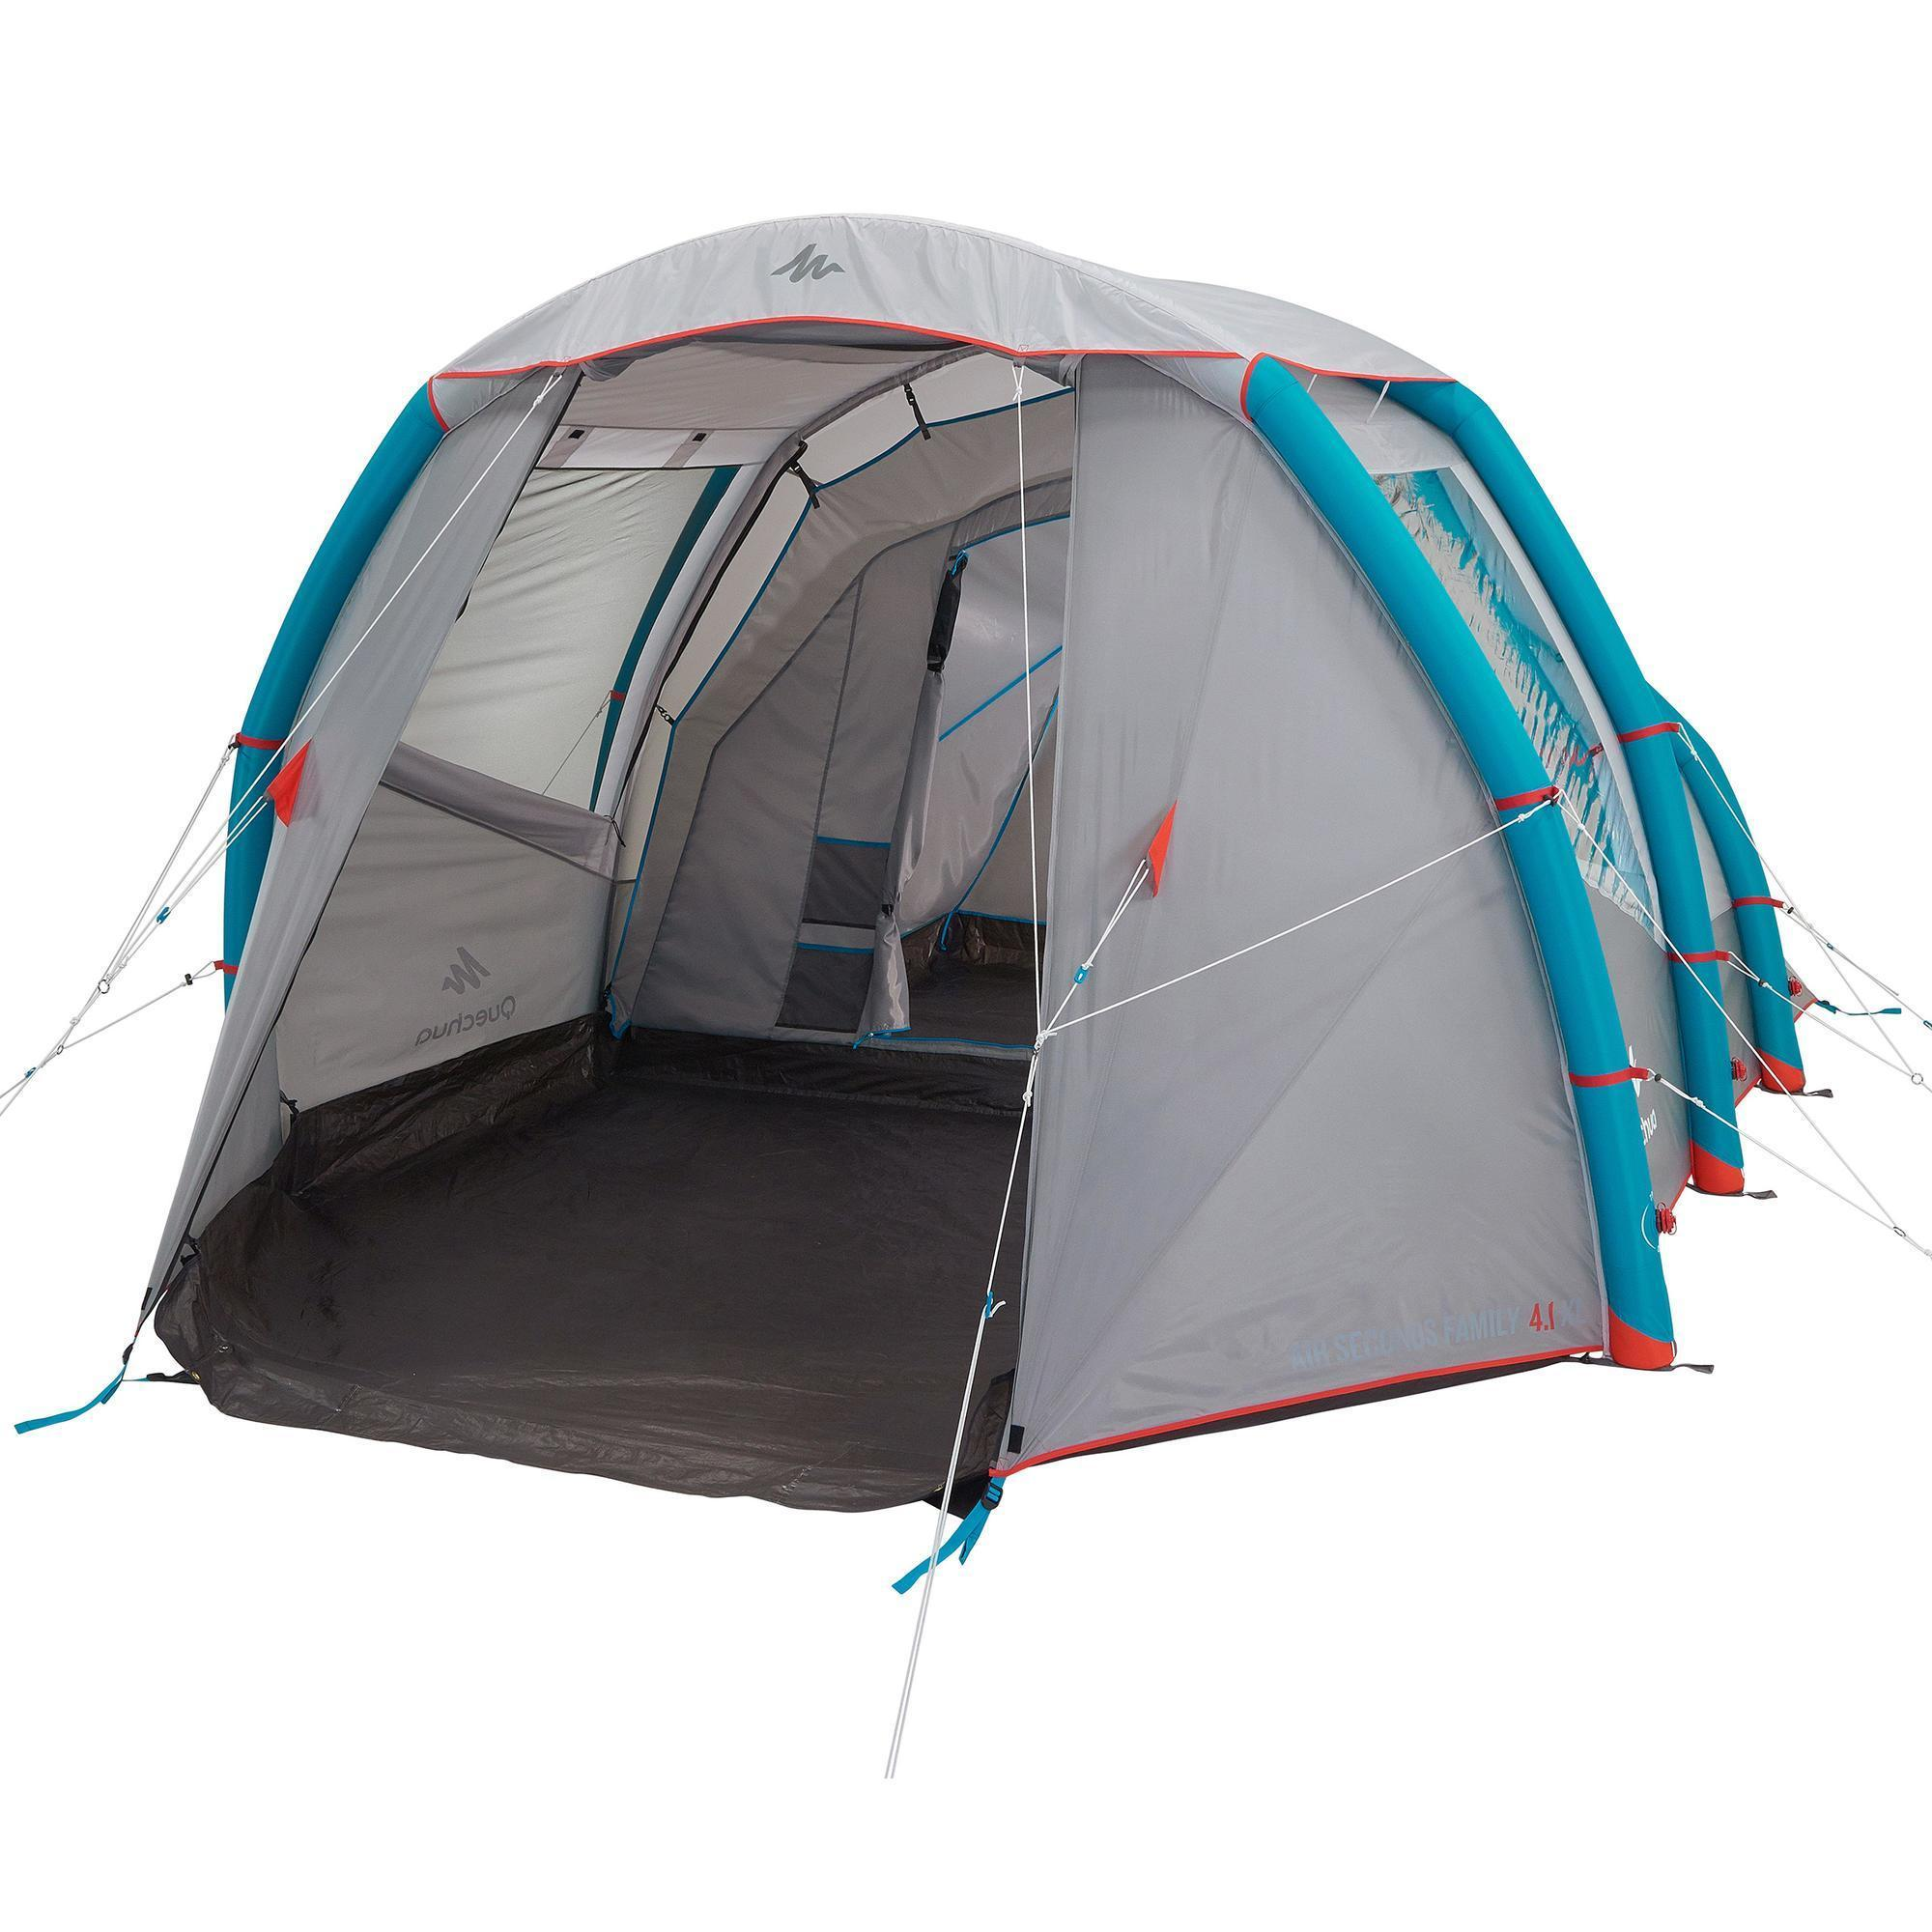 Air Seconds Family 4.1 xl Family Camping Tent